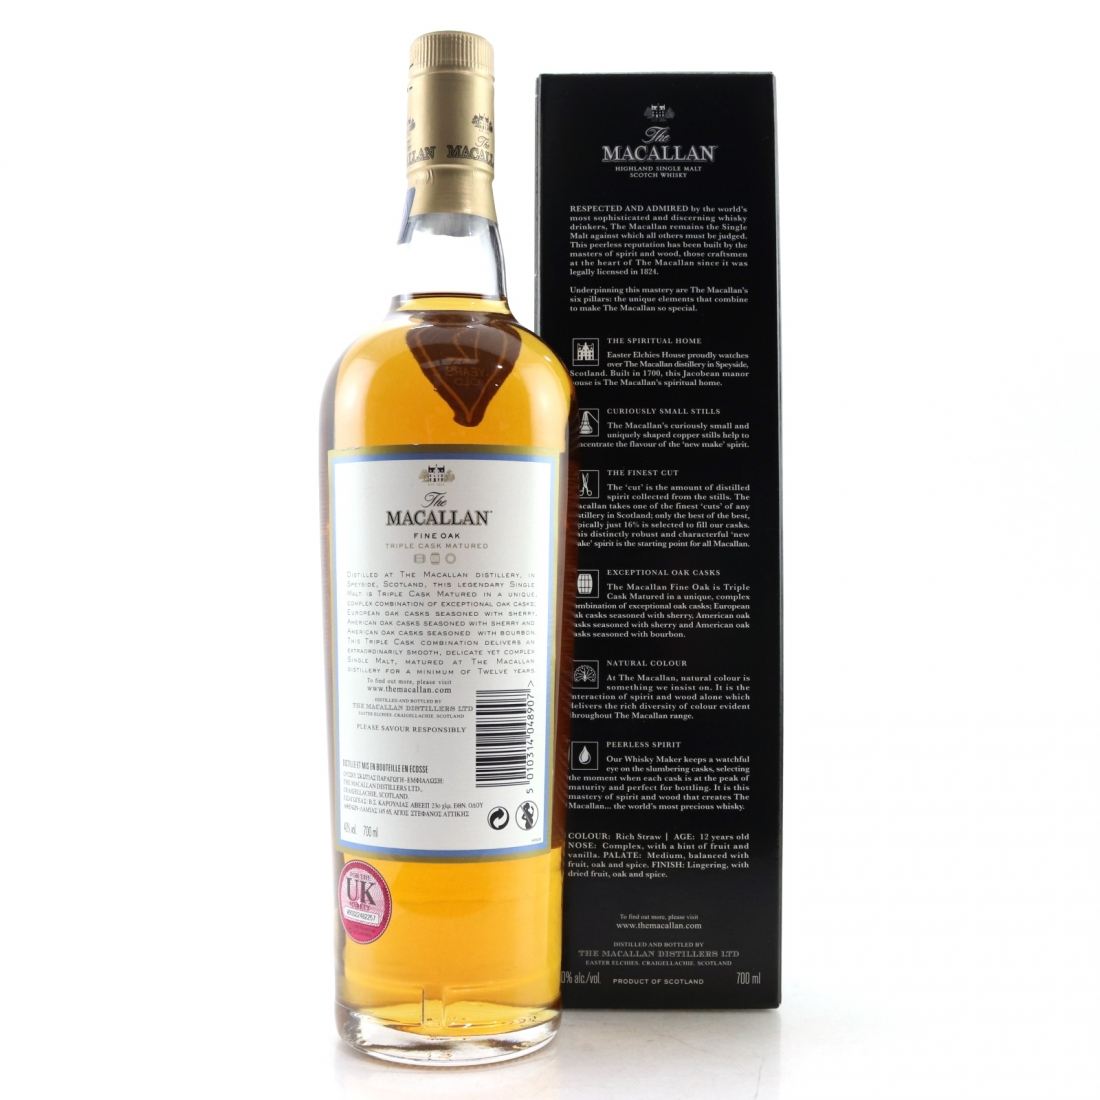 Macallan 12 Year Old Fine Oak Nick Veasey Pillars / No.5 Natural Colour